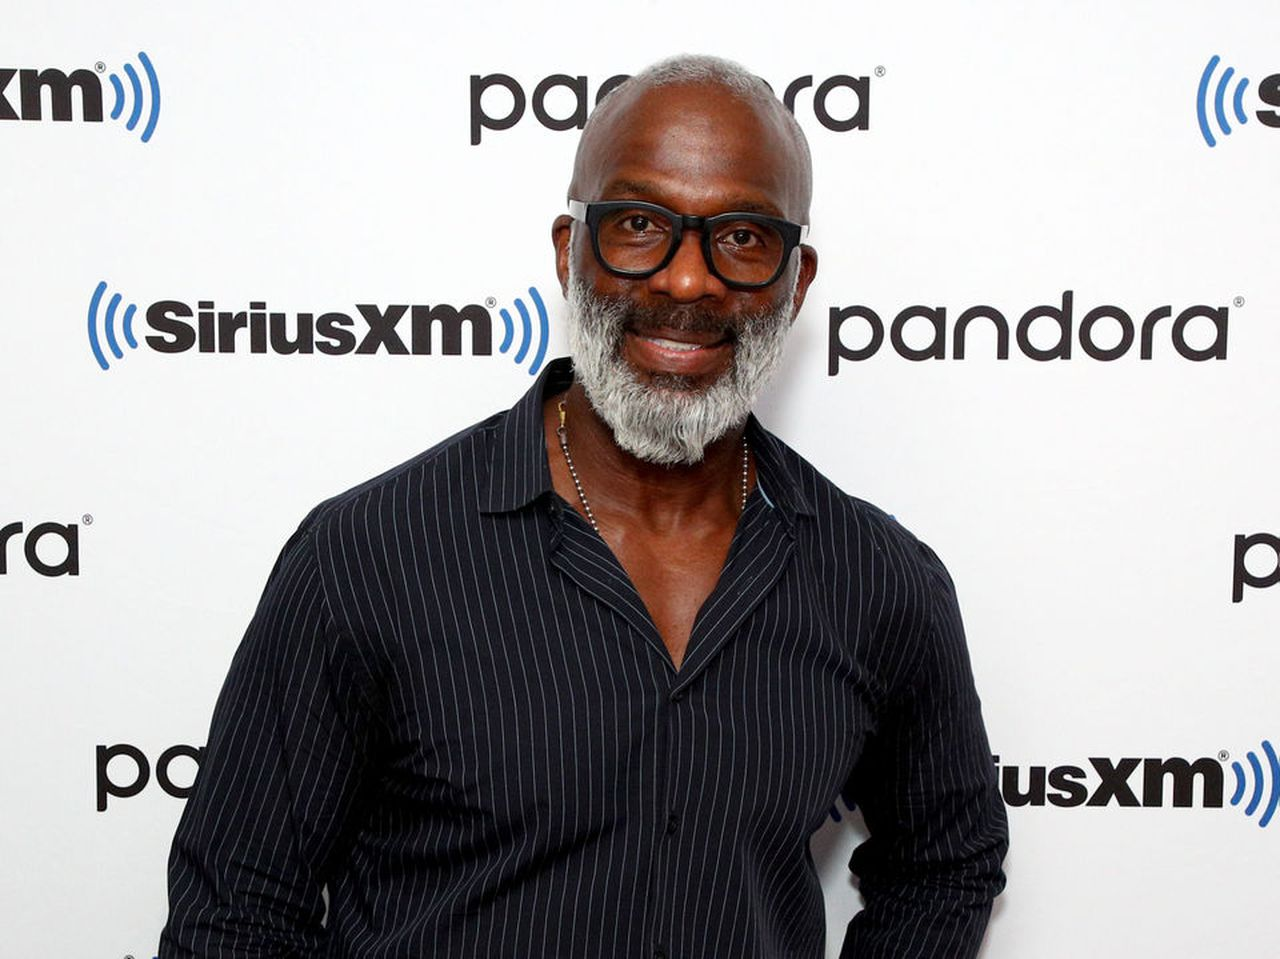 Gospel singer, BeBe Winans Reveals He, His Mother And Brother All Contracted COVID-19